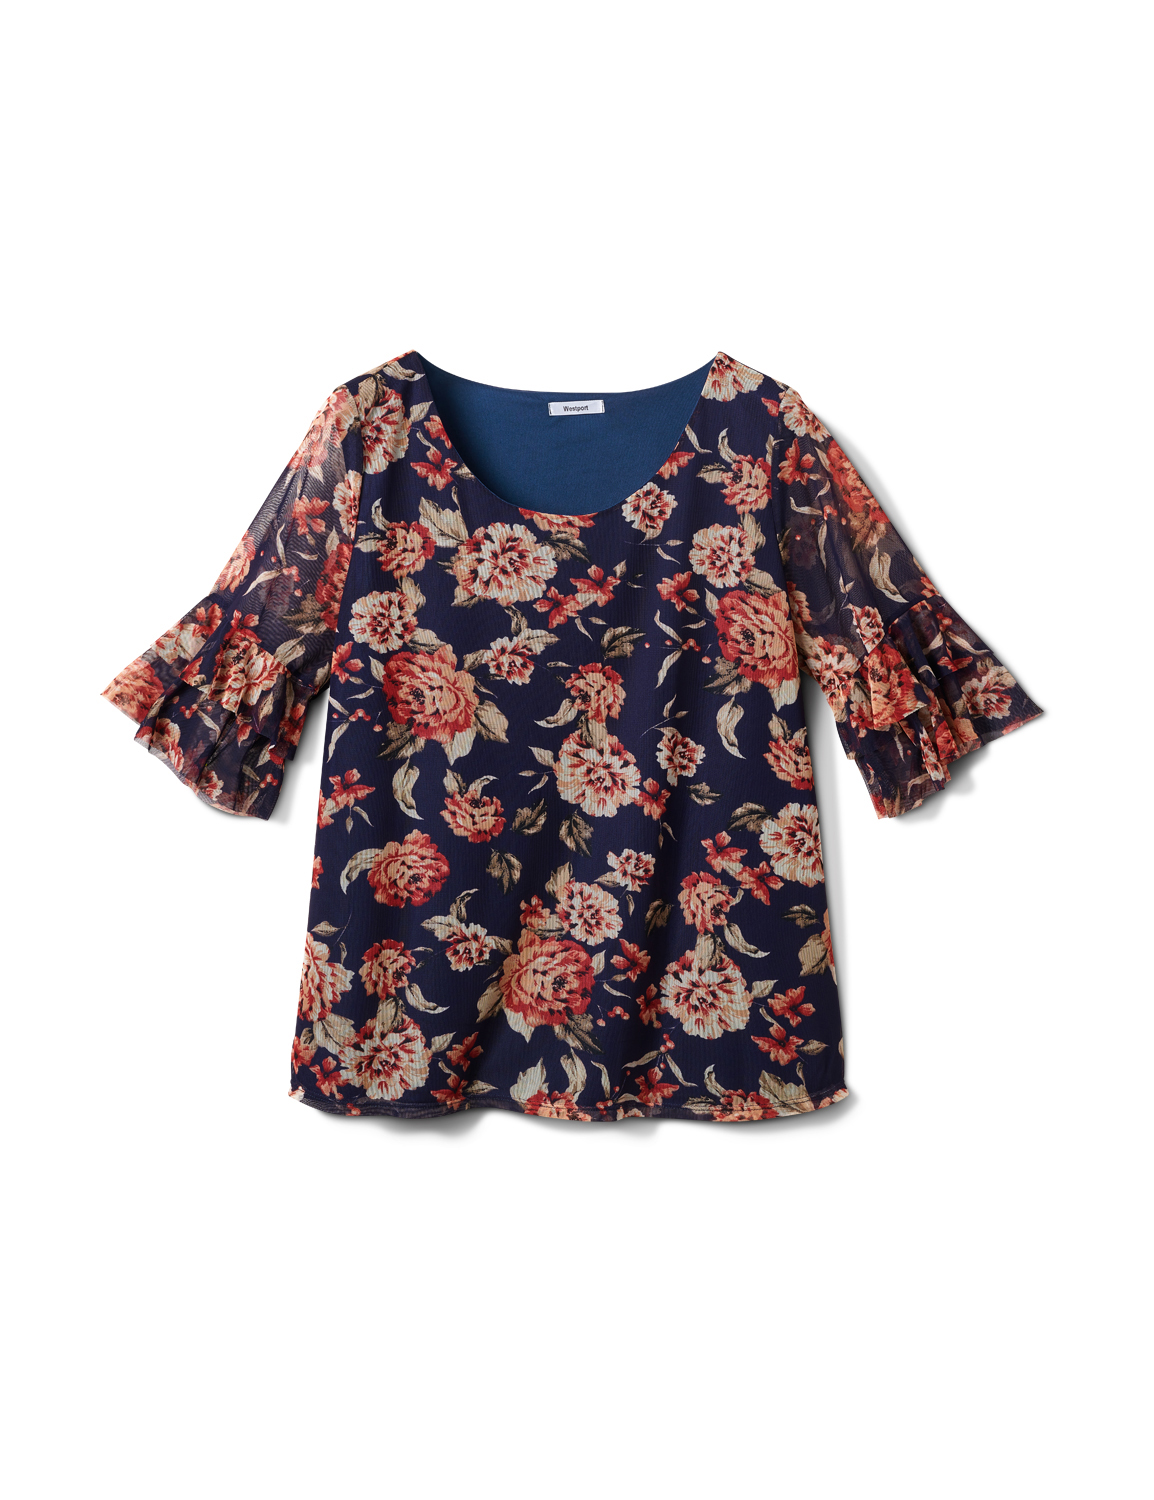 Floral Mesh Ruffle Sleeve Knit Top - Plus -Navy - Front